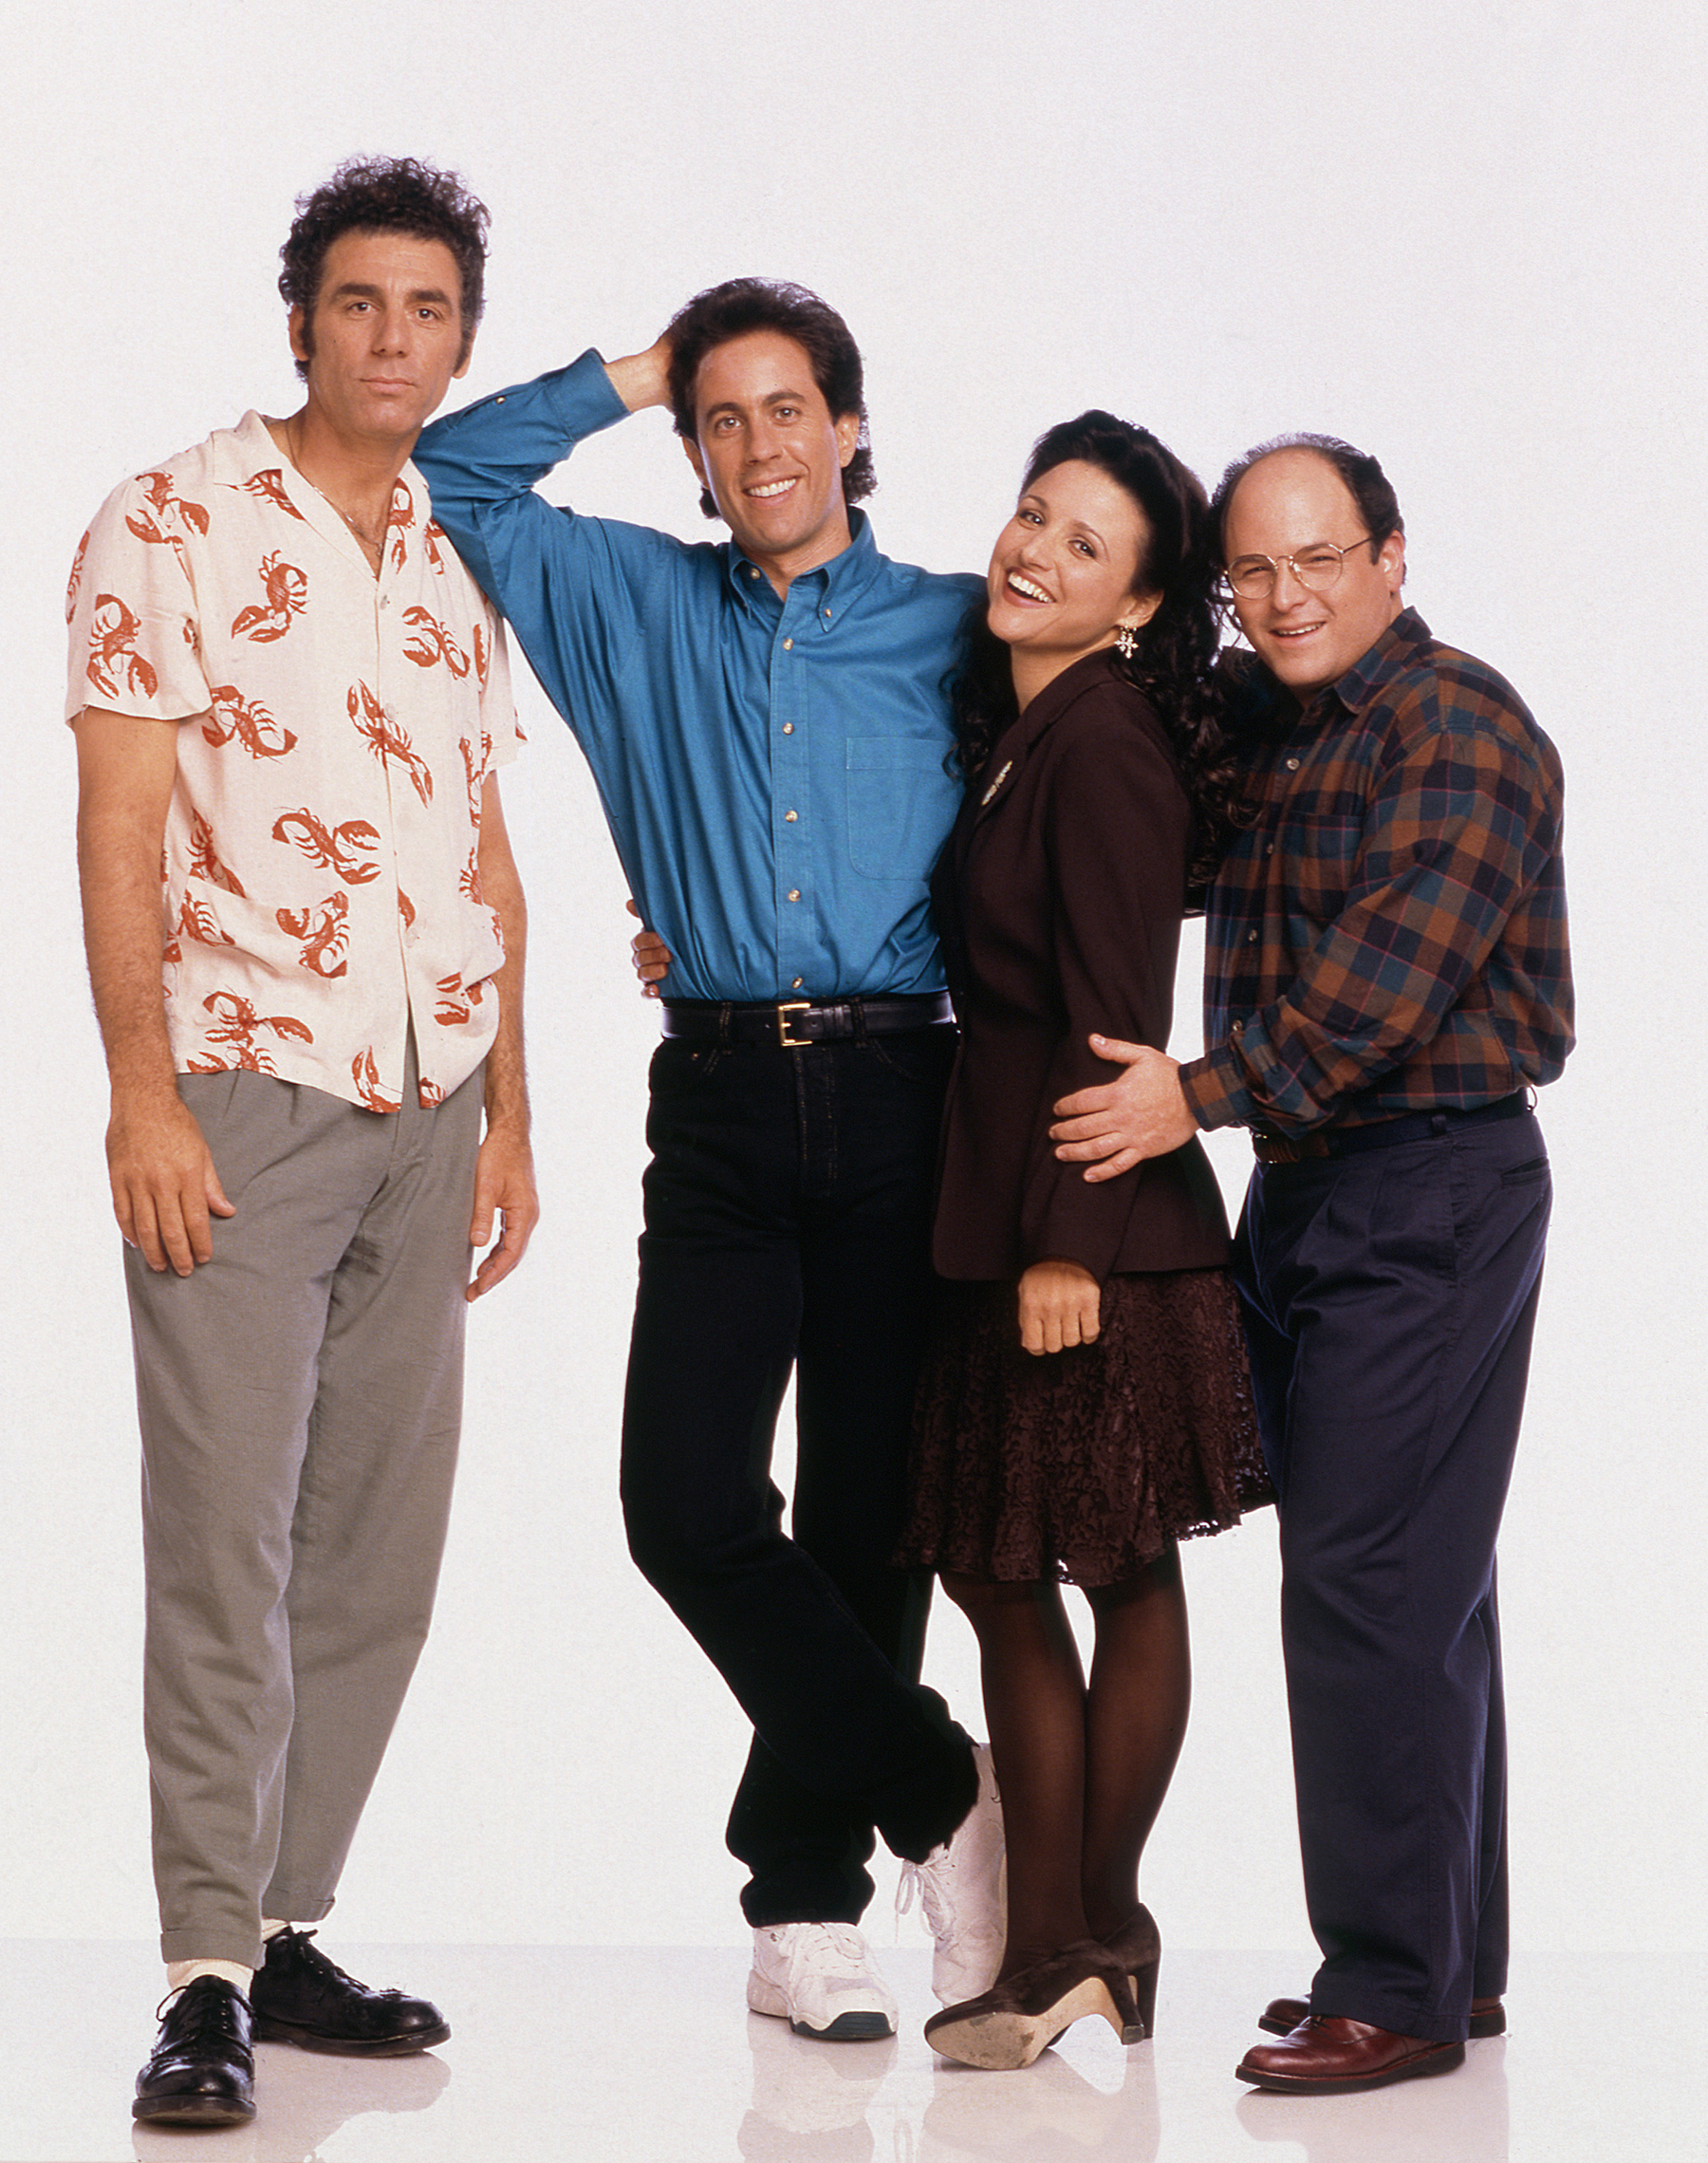 100 Best Seinfeld Characters From Soup Nazis To Nuts Rolling Stone